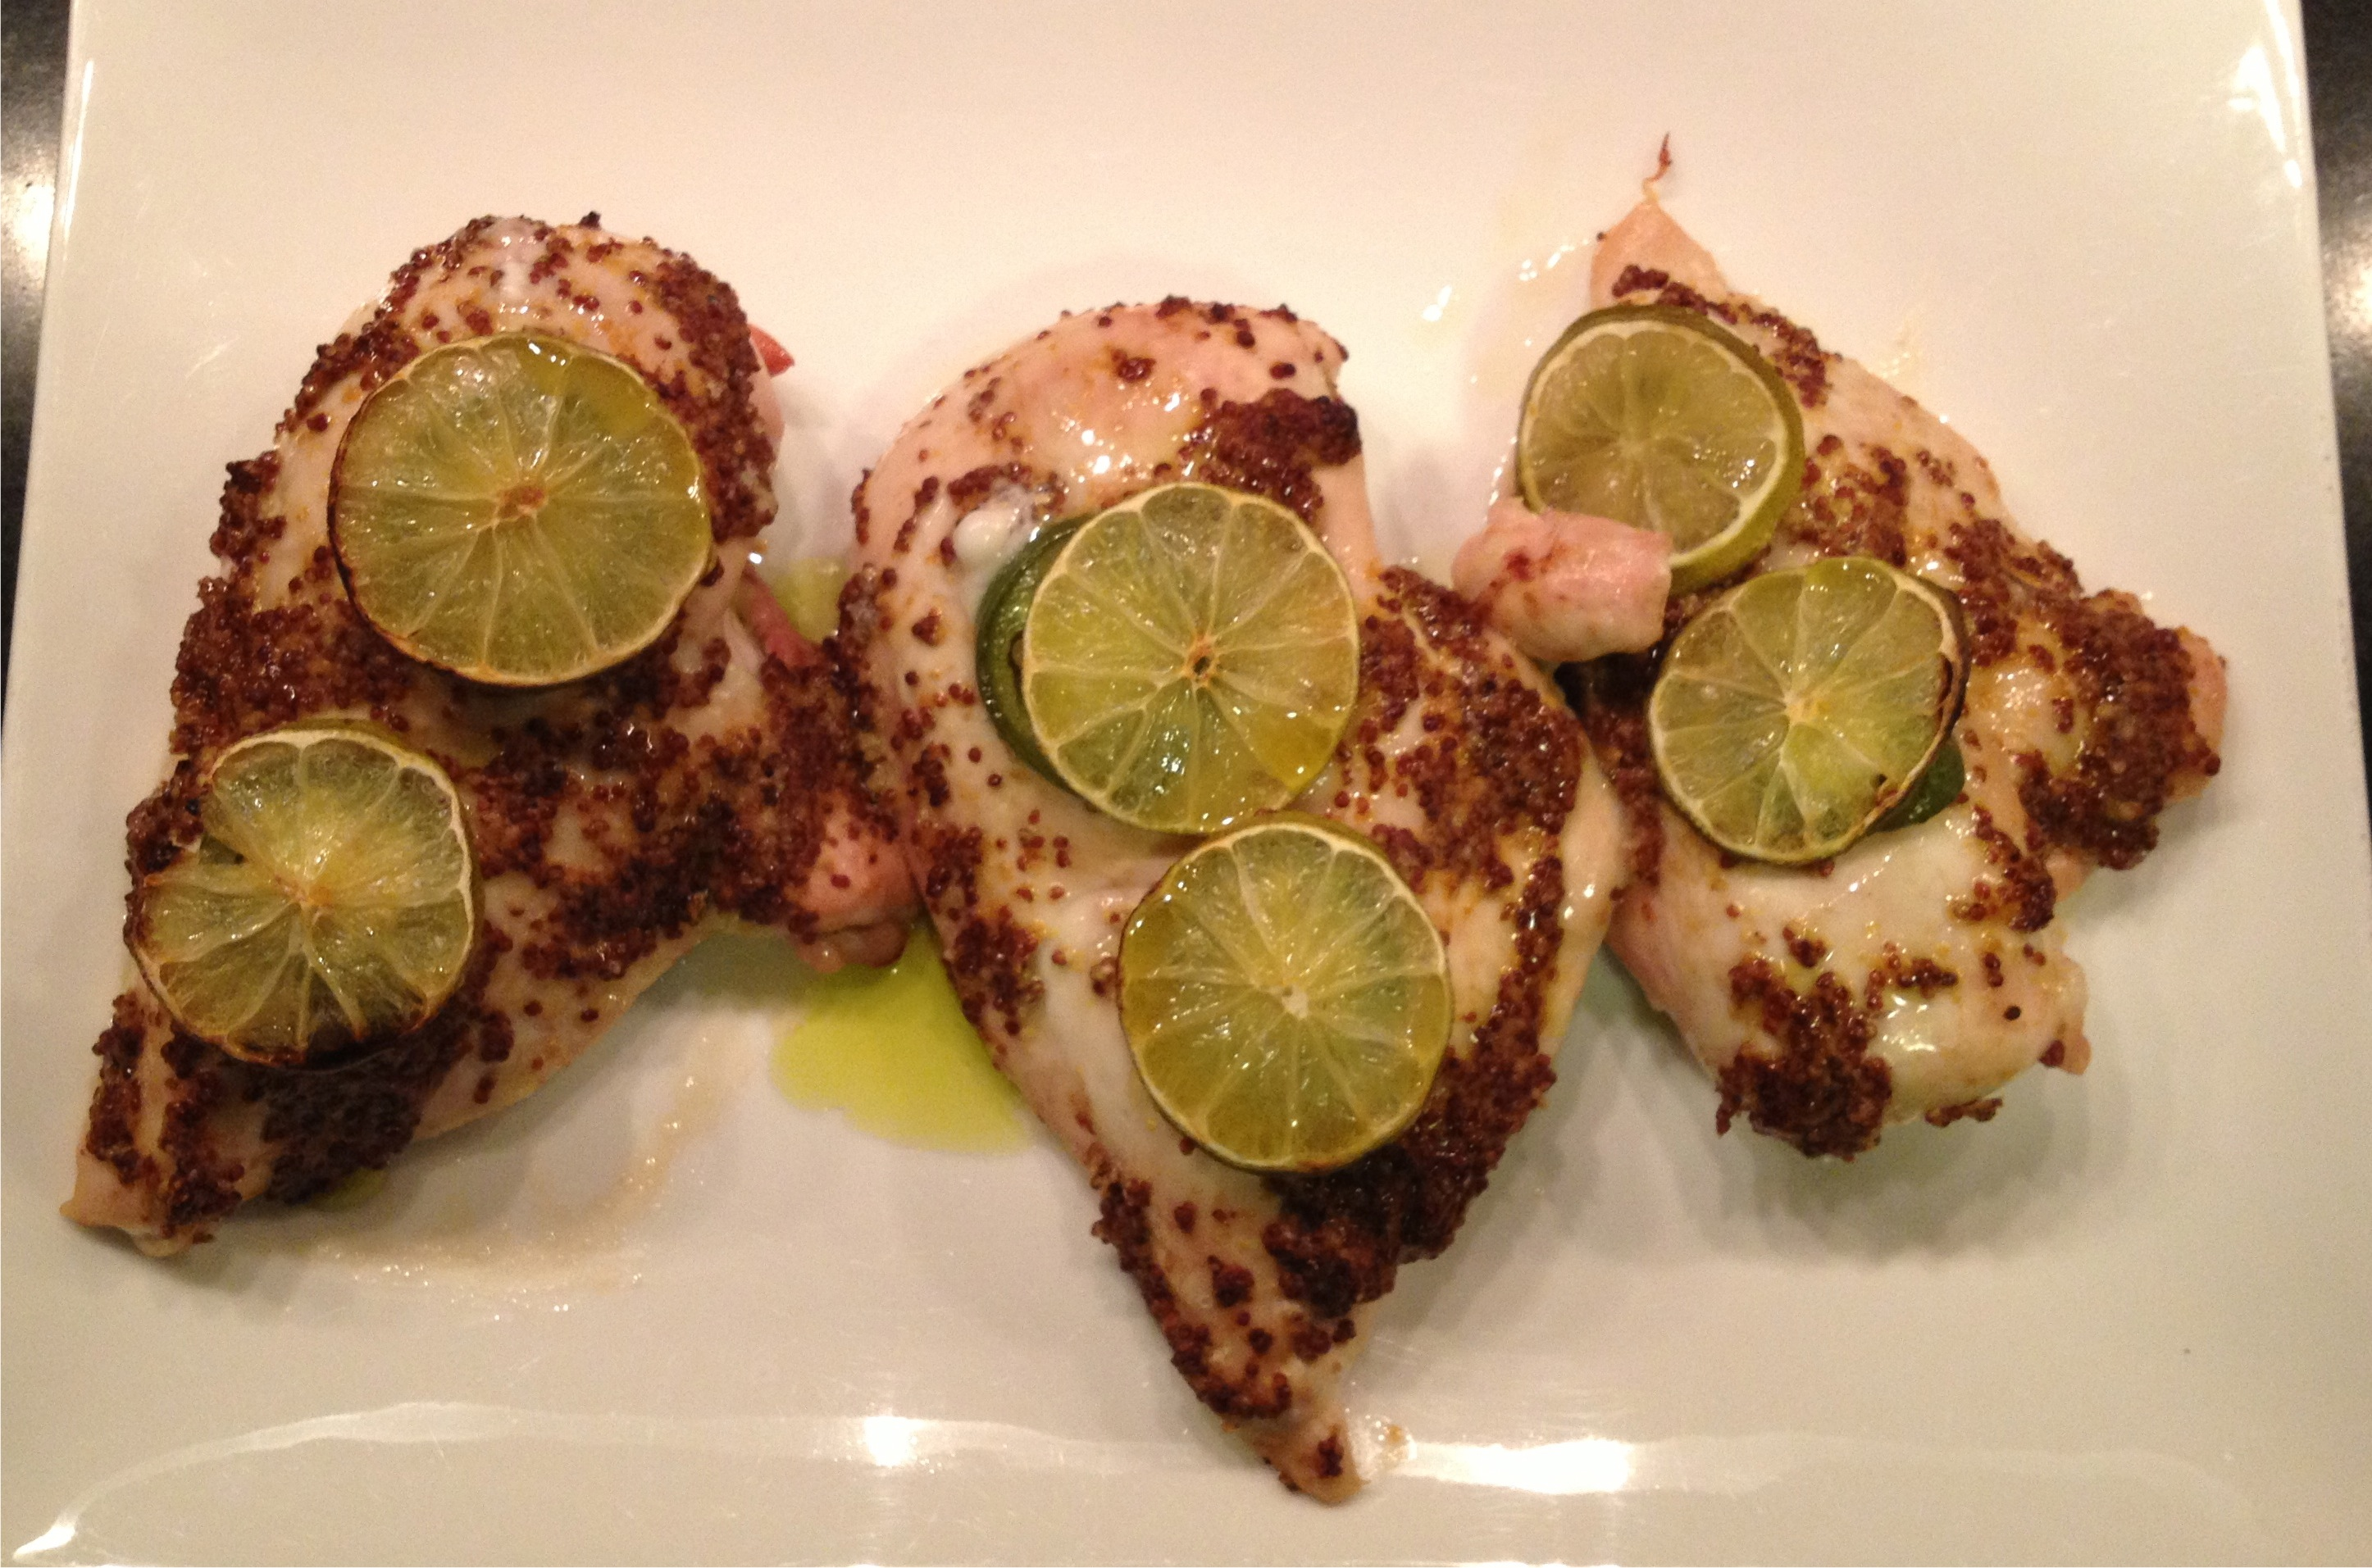 Grainy mustard coated chicken breast with jalapeno and limes on a white platter.